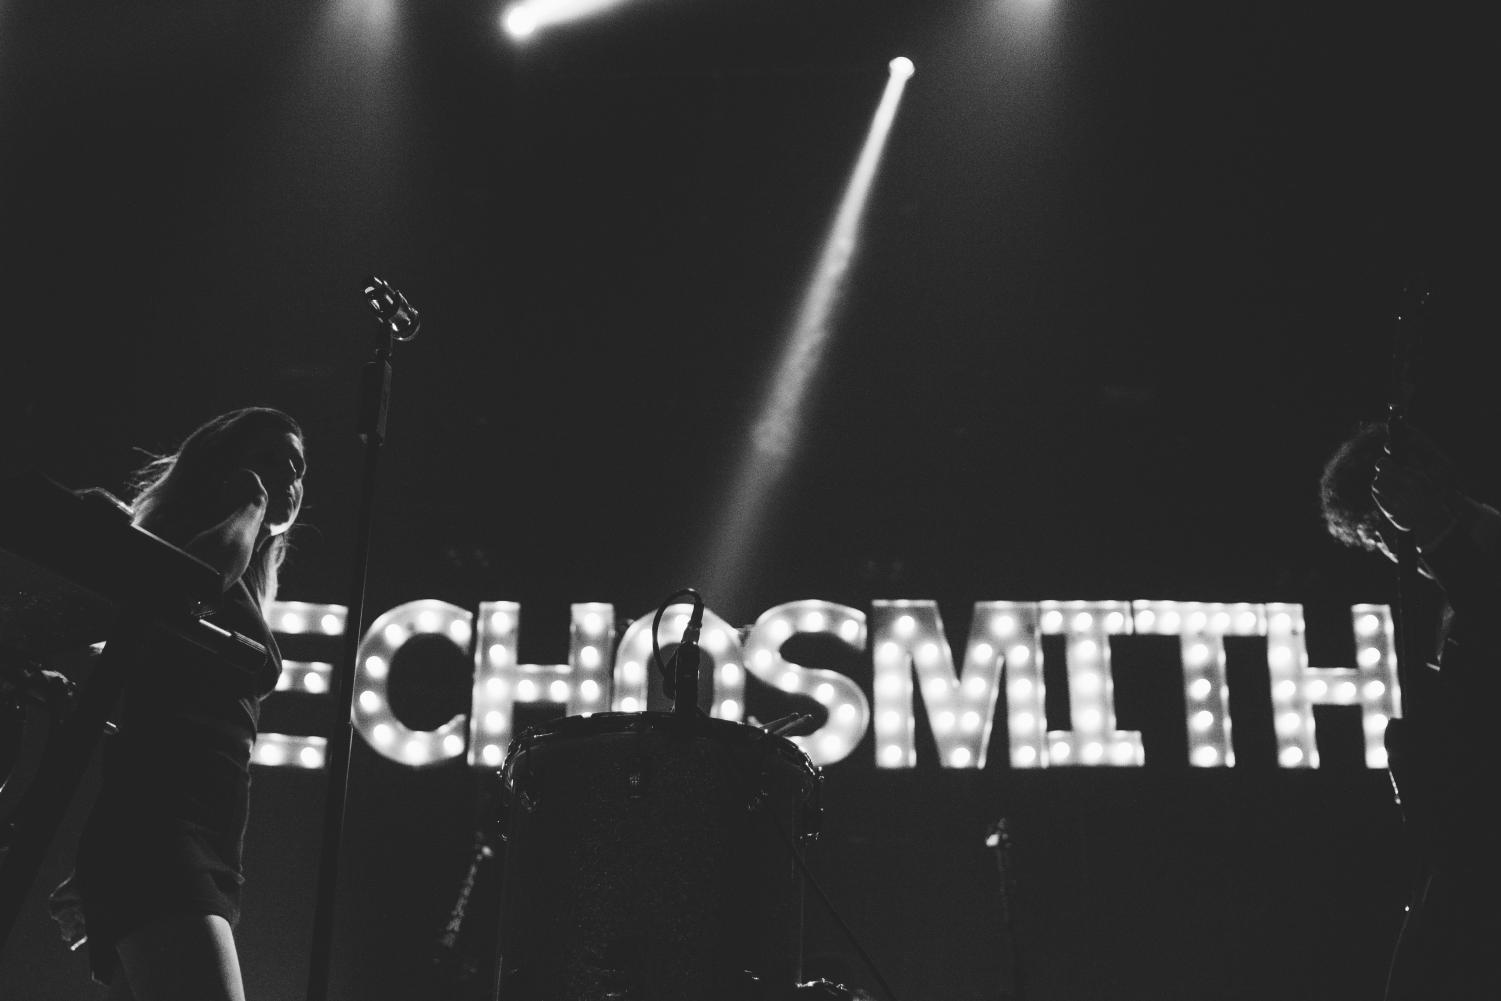 A performance by the band of siblings, Echosmith, shows their titled name flashing in the backdrop of the stage. (via Flickr under Creative Commons license).